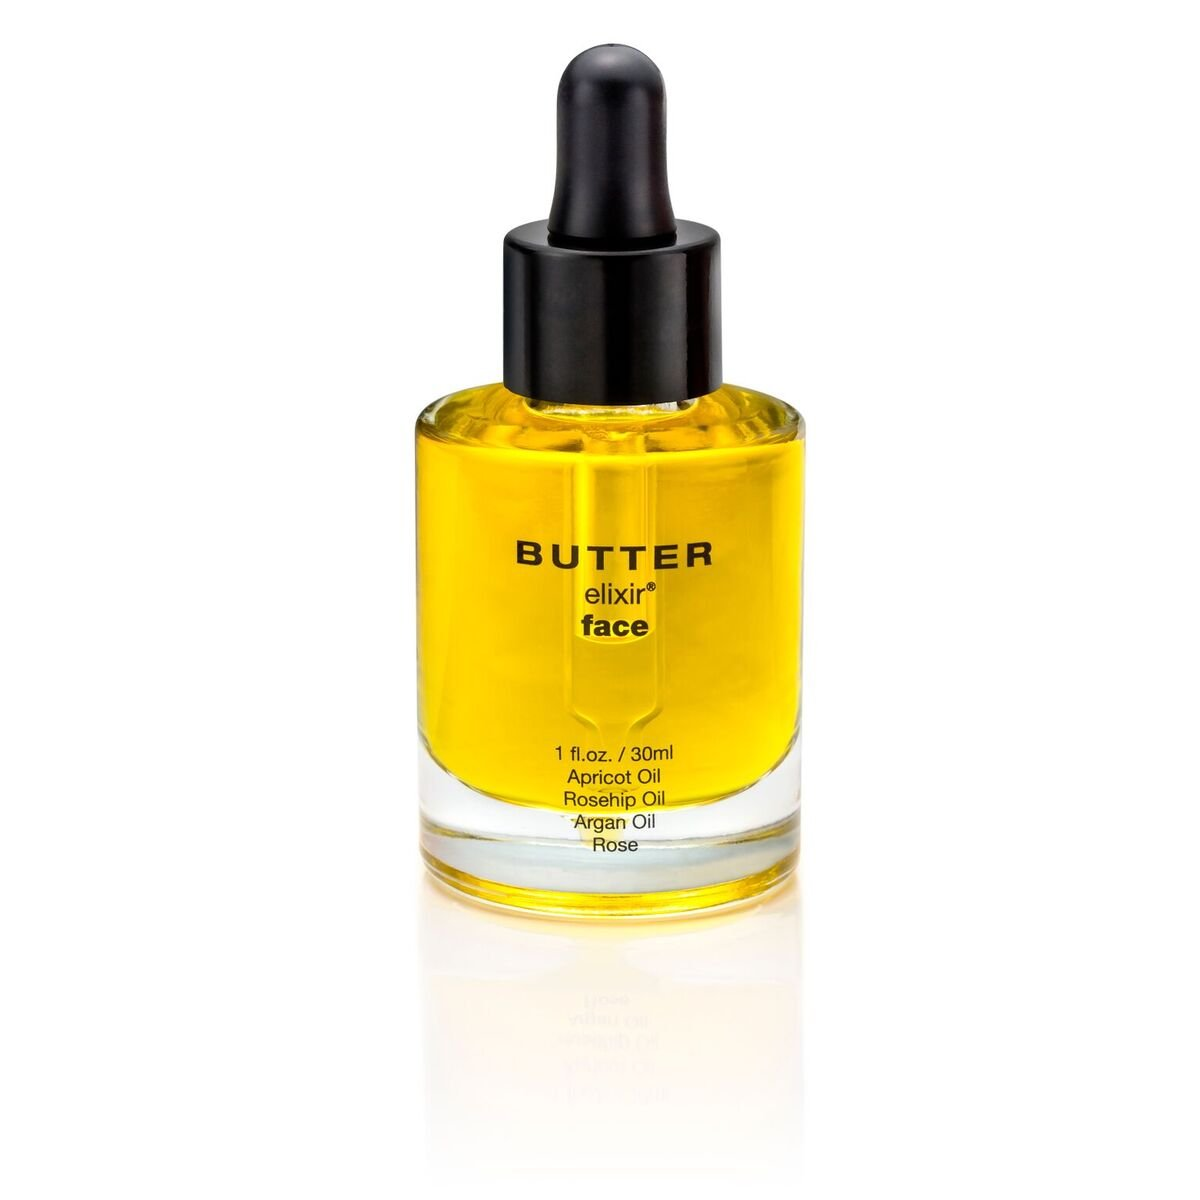 BUTTERelixir Face Oil